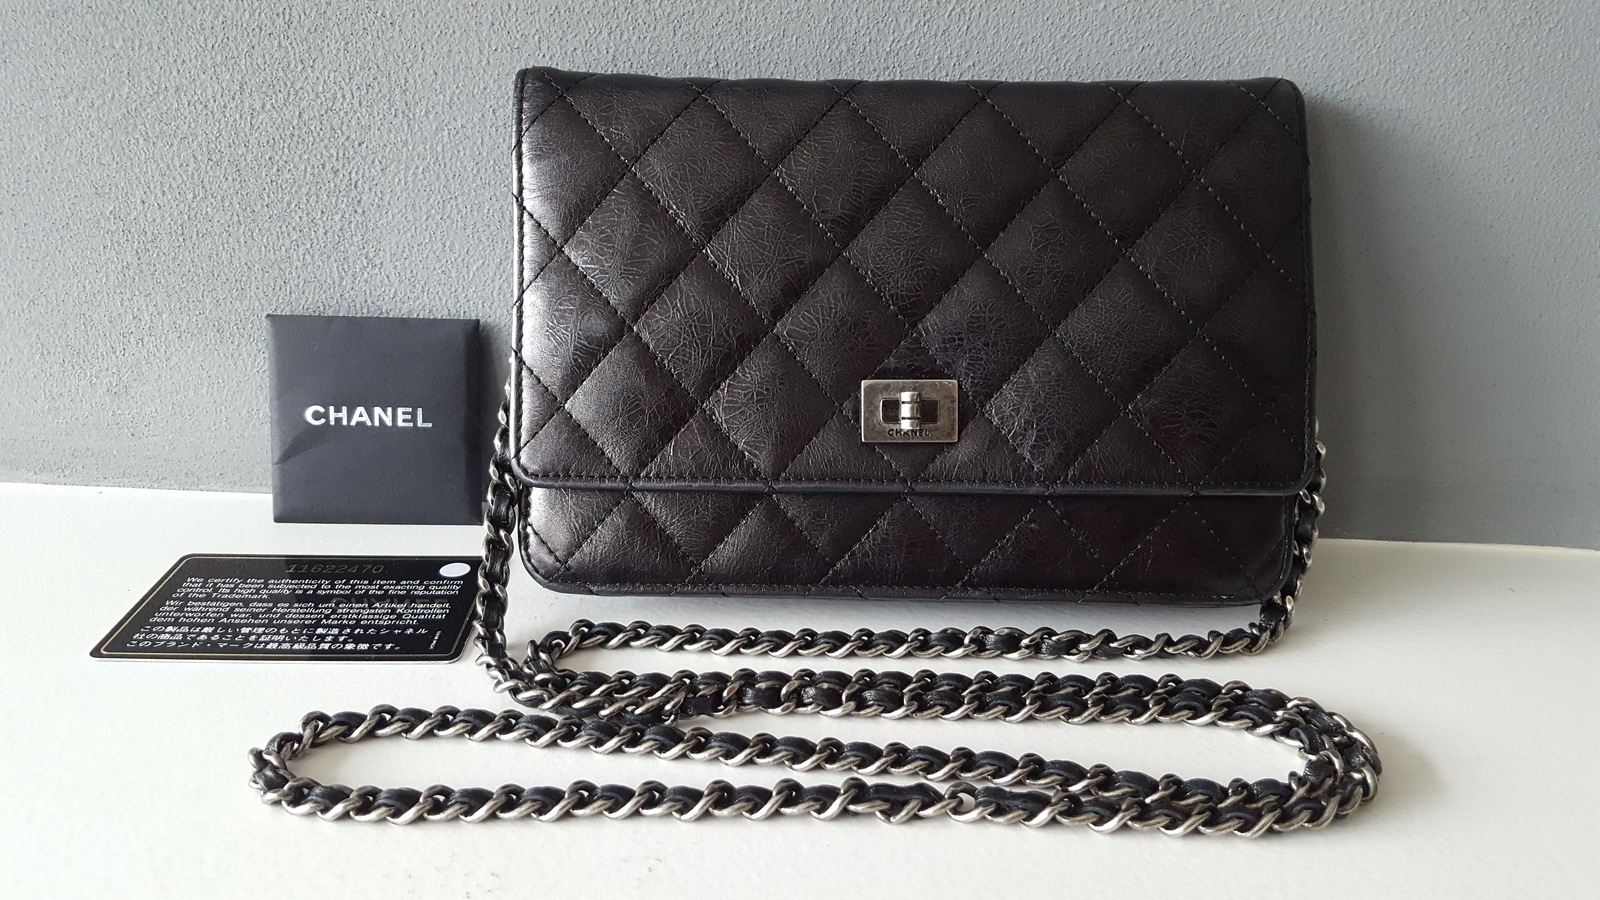 5378dda6924a 20170329 133047. 20170329 133047. Previous. Authentic Chanel WOC wallet chain  black purse bag PRE-OWNED